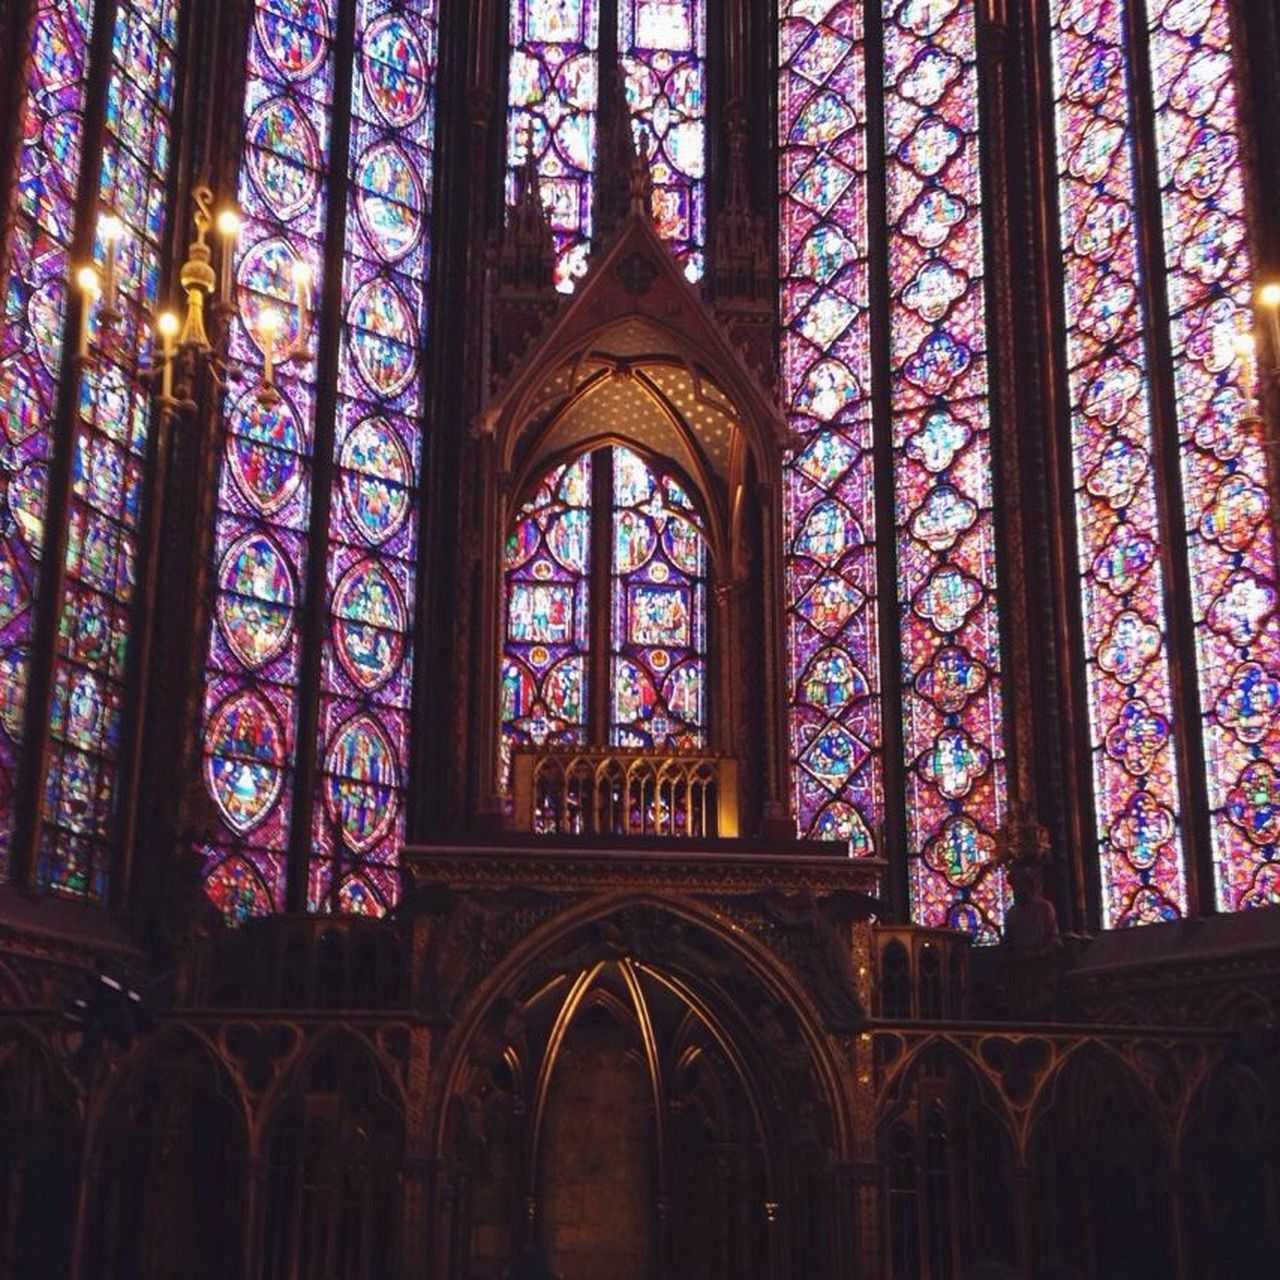 Place Of Worship Stained Glass Window Multi Colored Architecture